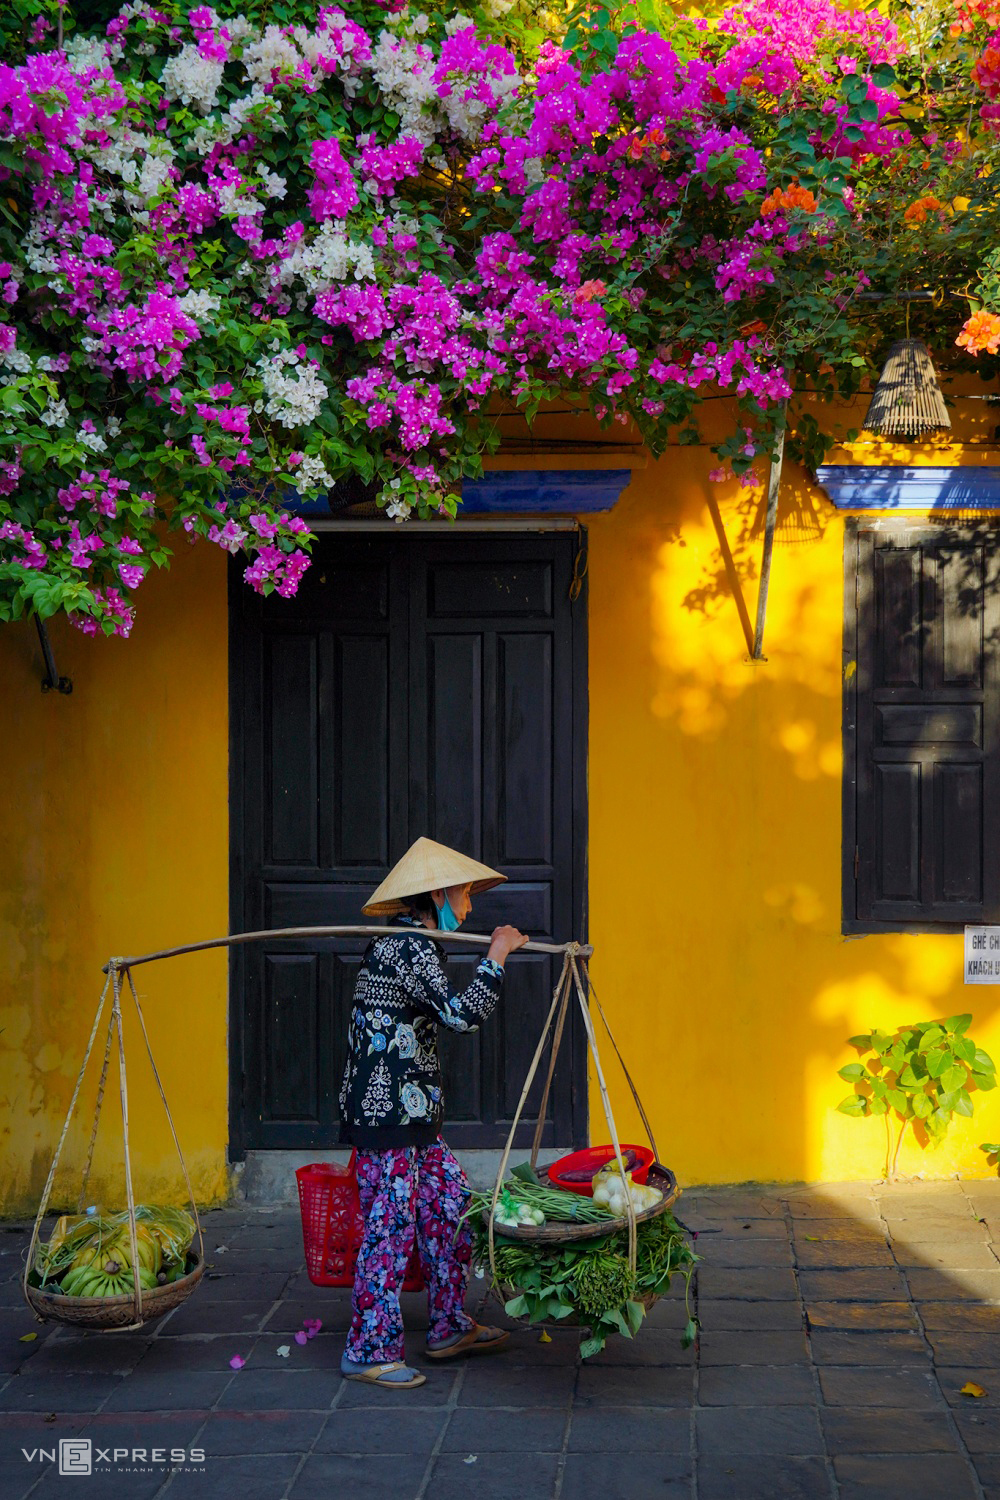 A glimpse of poetic Hoi An Ancient Town in autumn